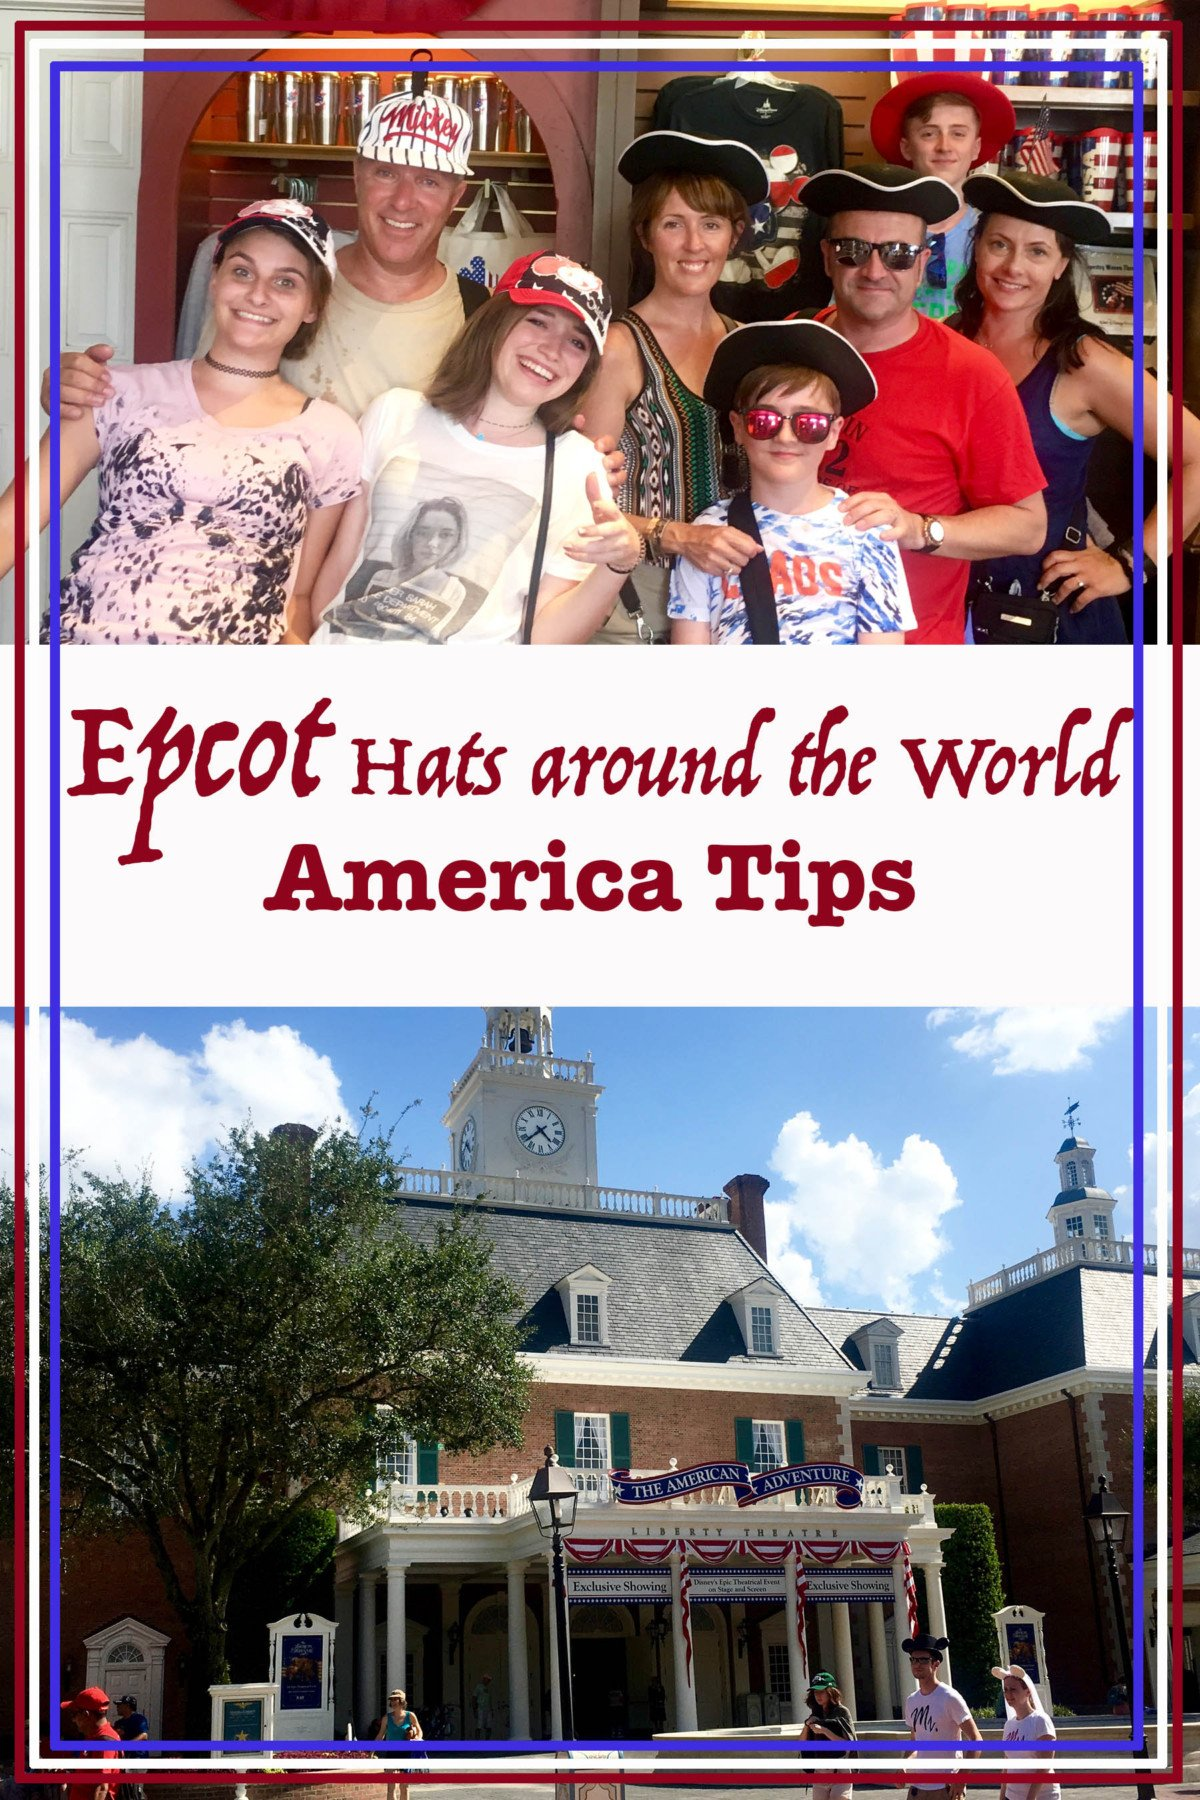 Epcot Hats Around the World, America Tips.